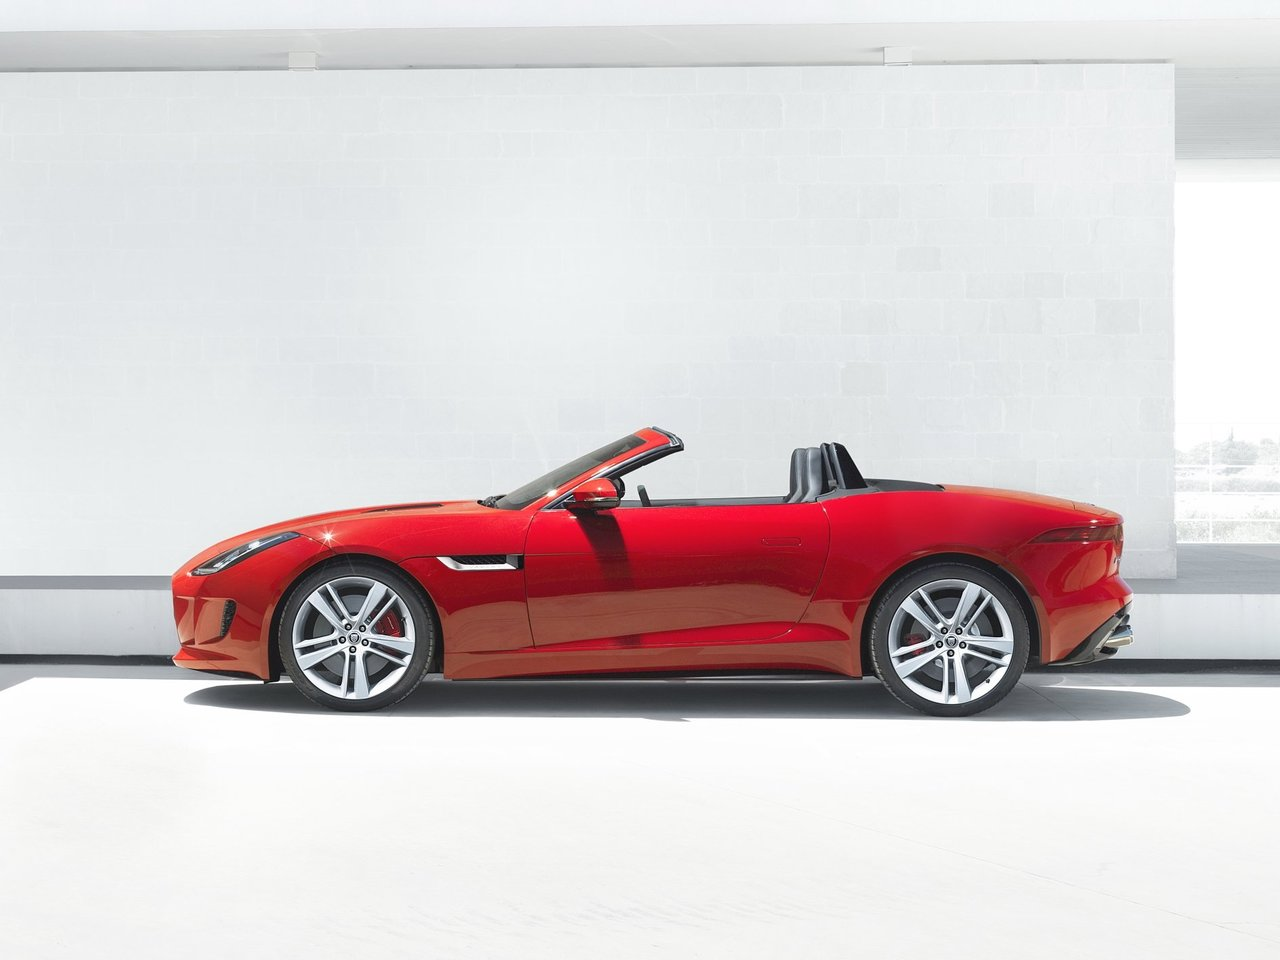 Снимки: Jaguar F-type Roadster